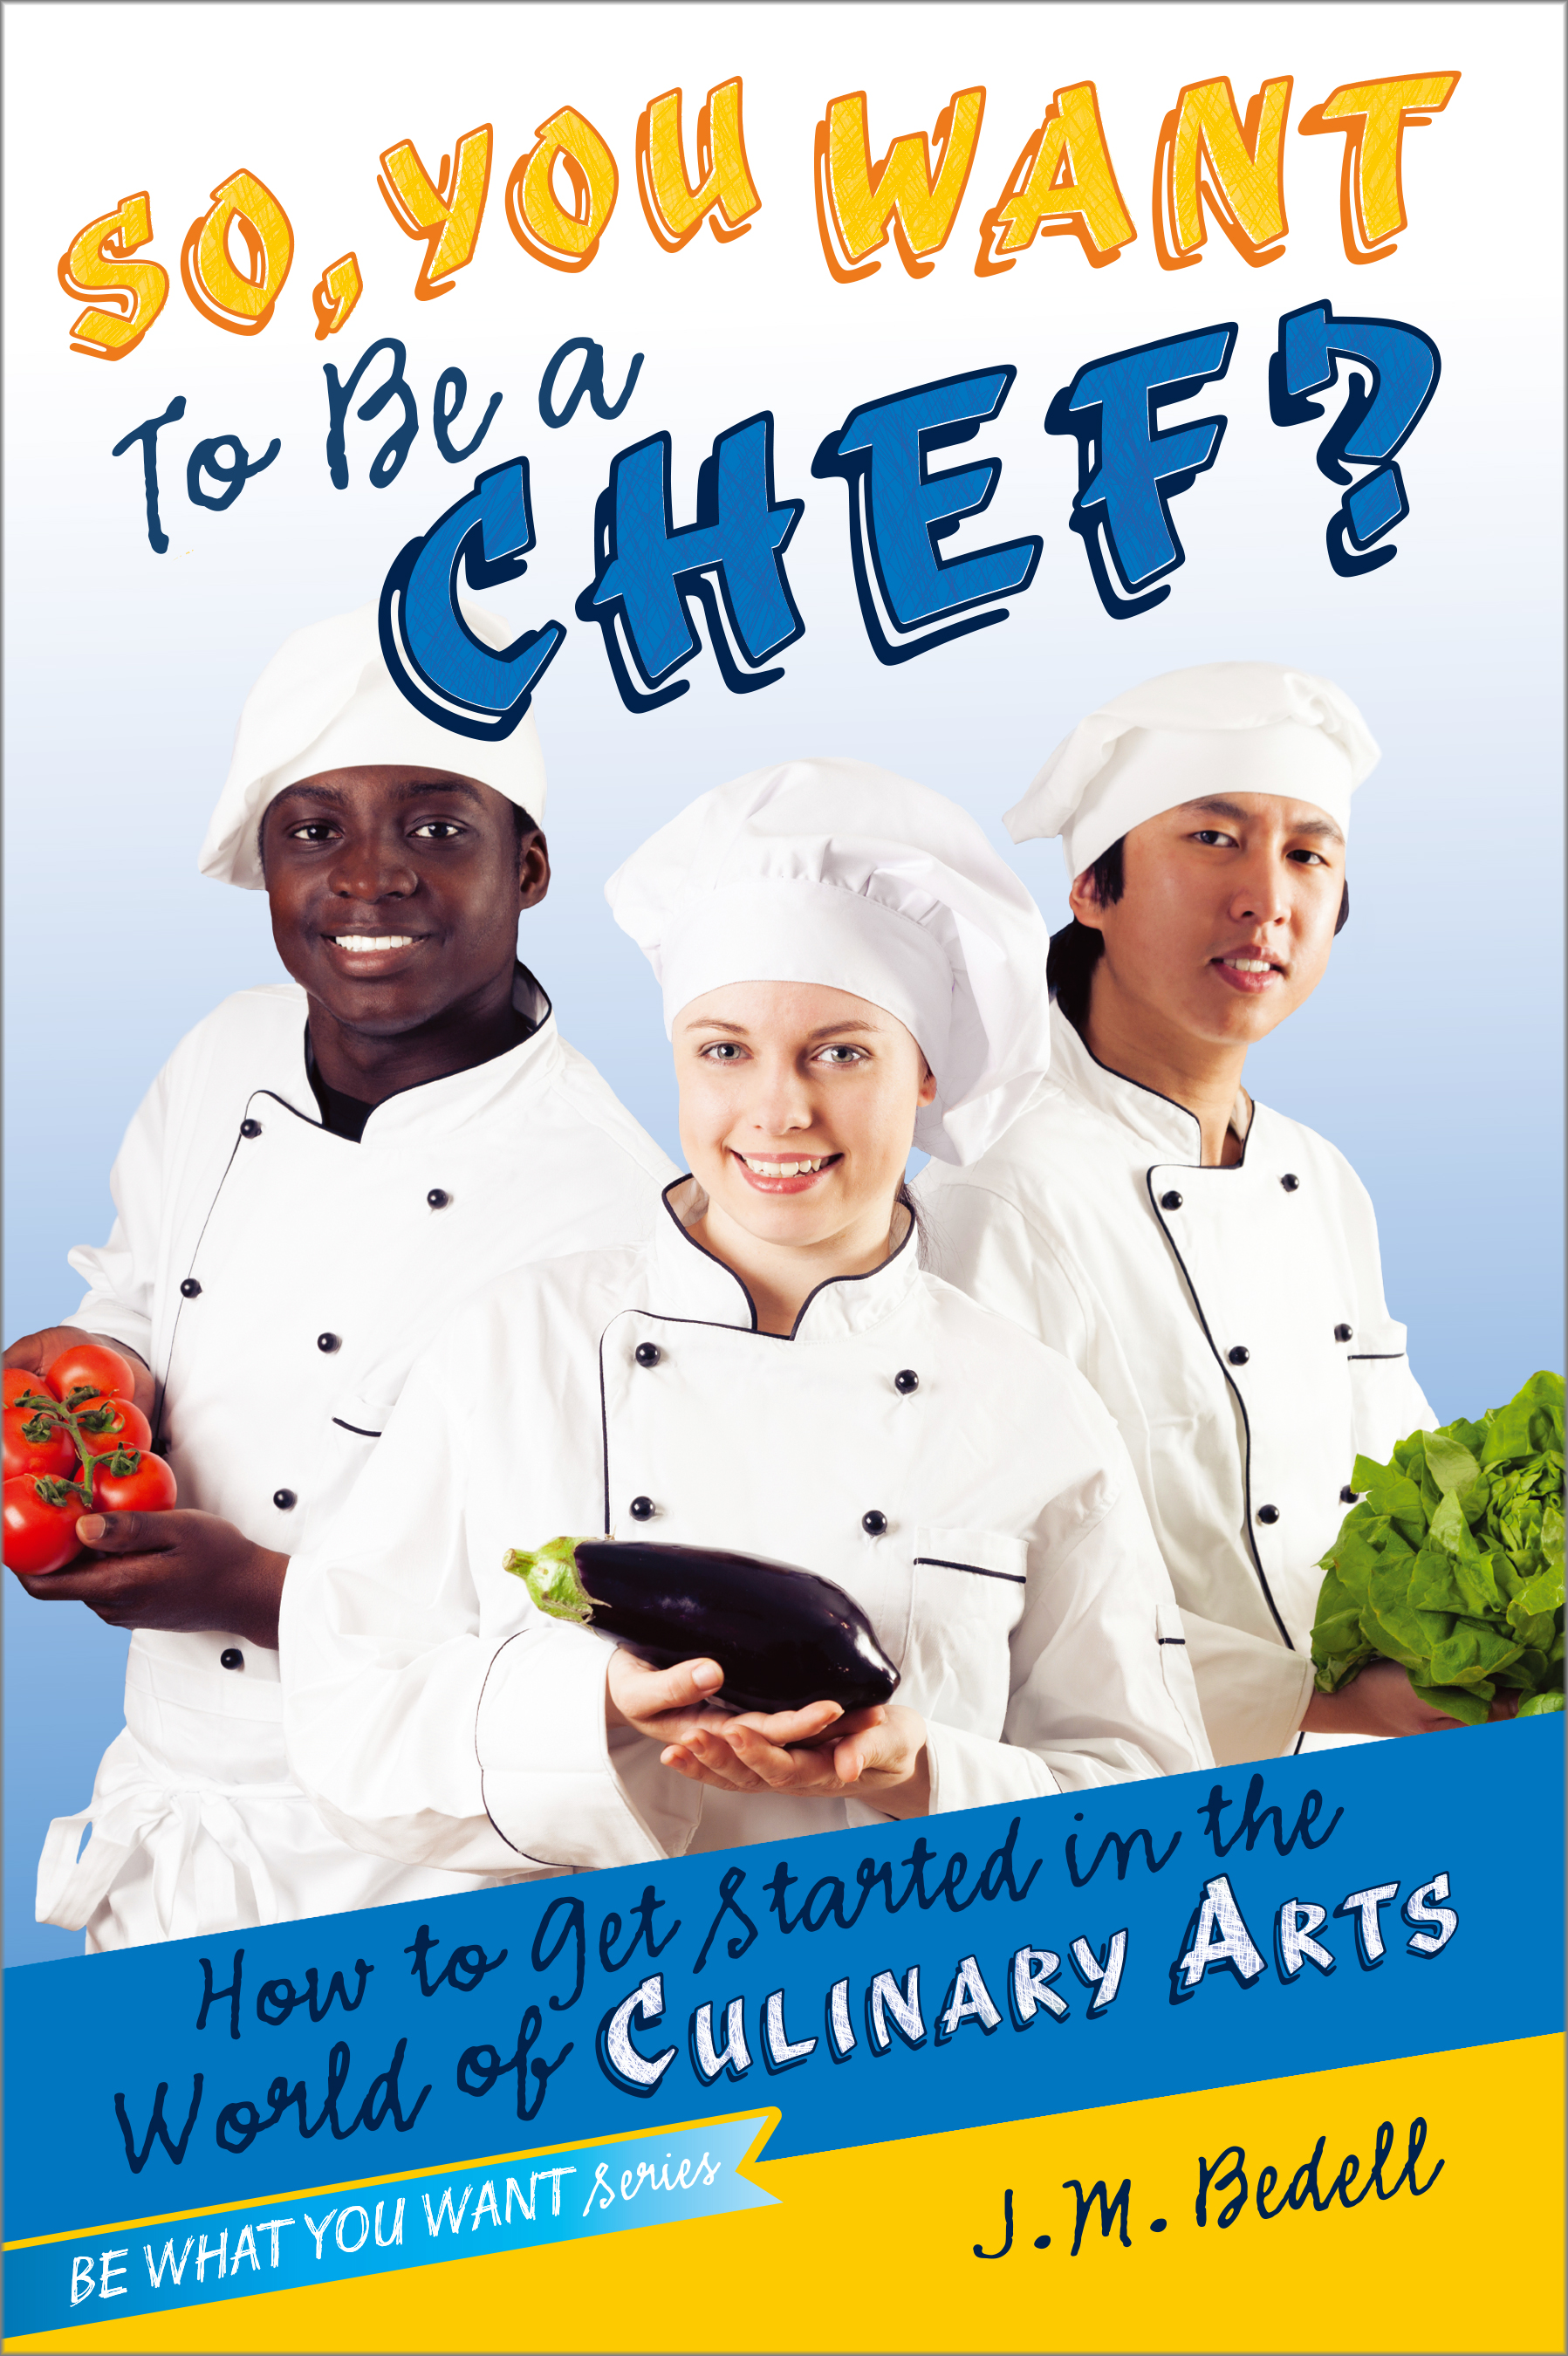 I want to be a chef!